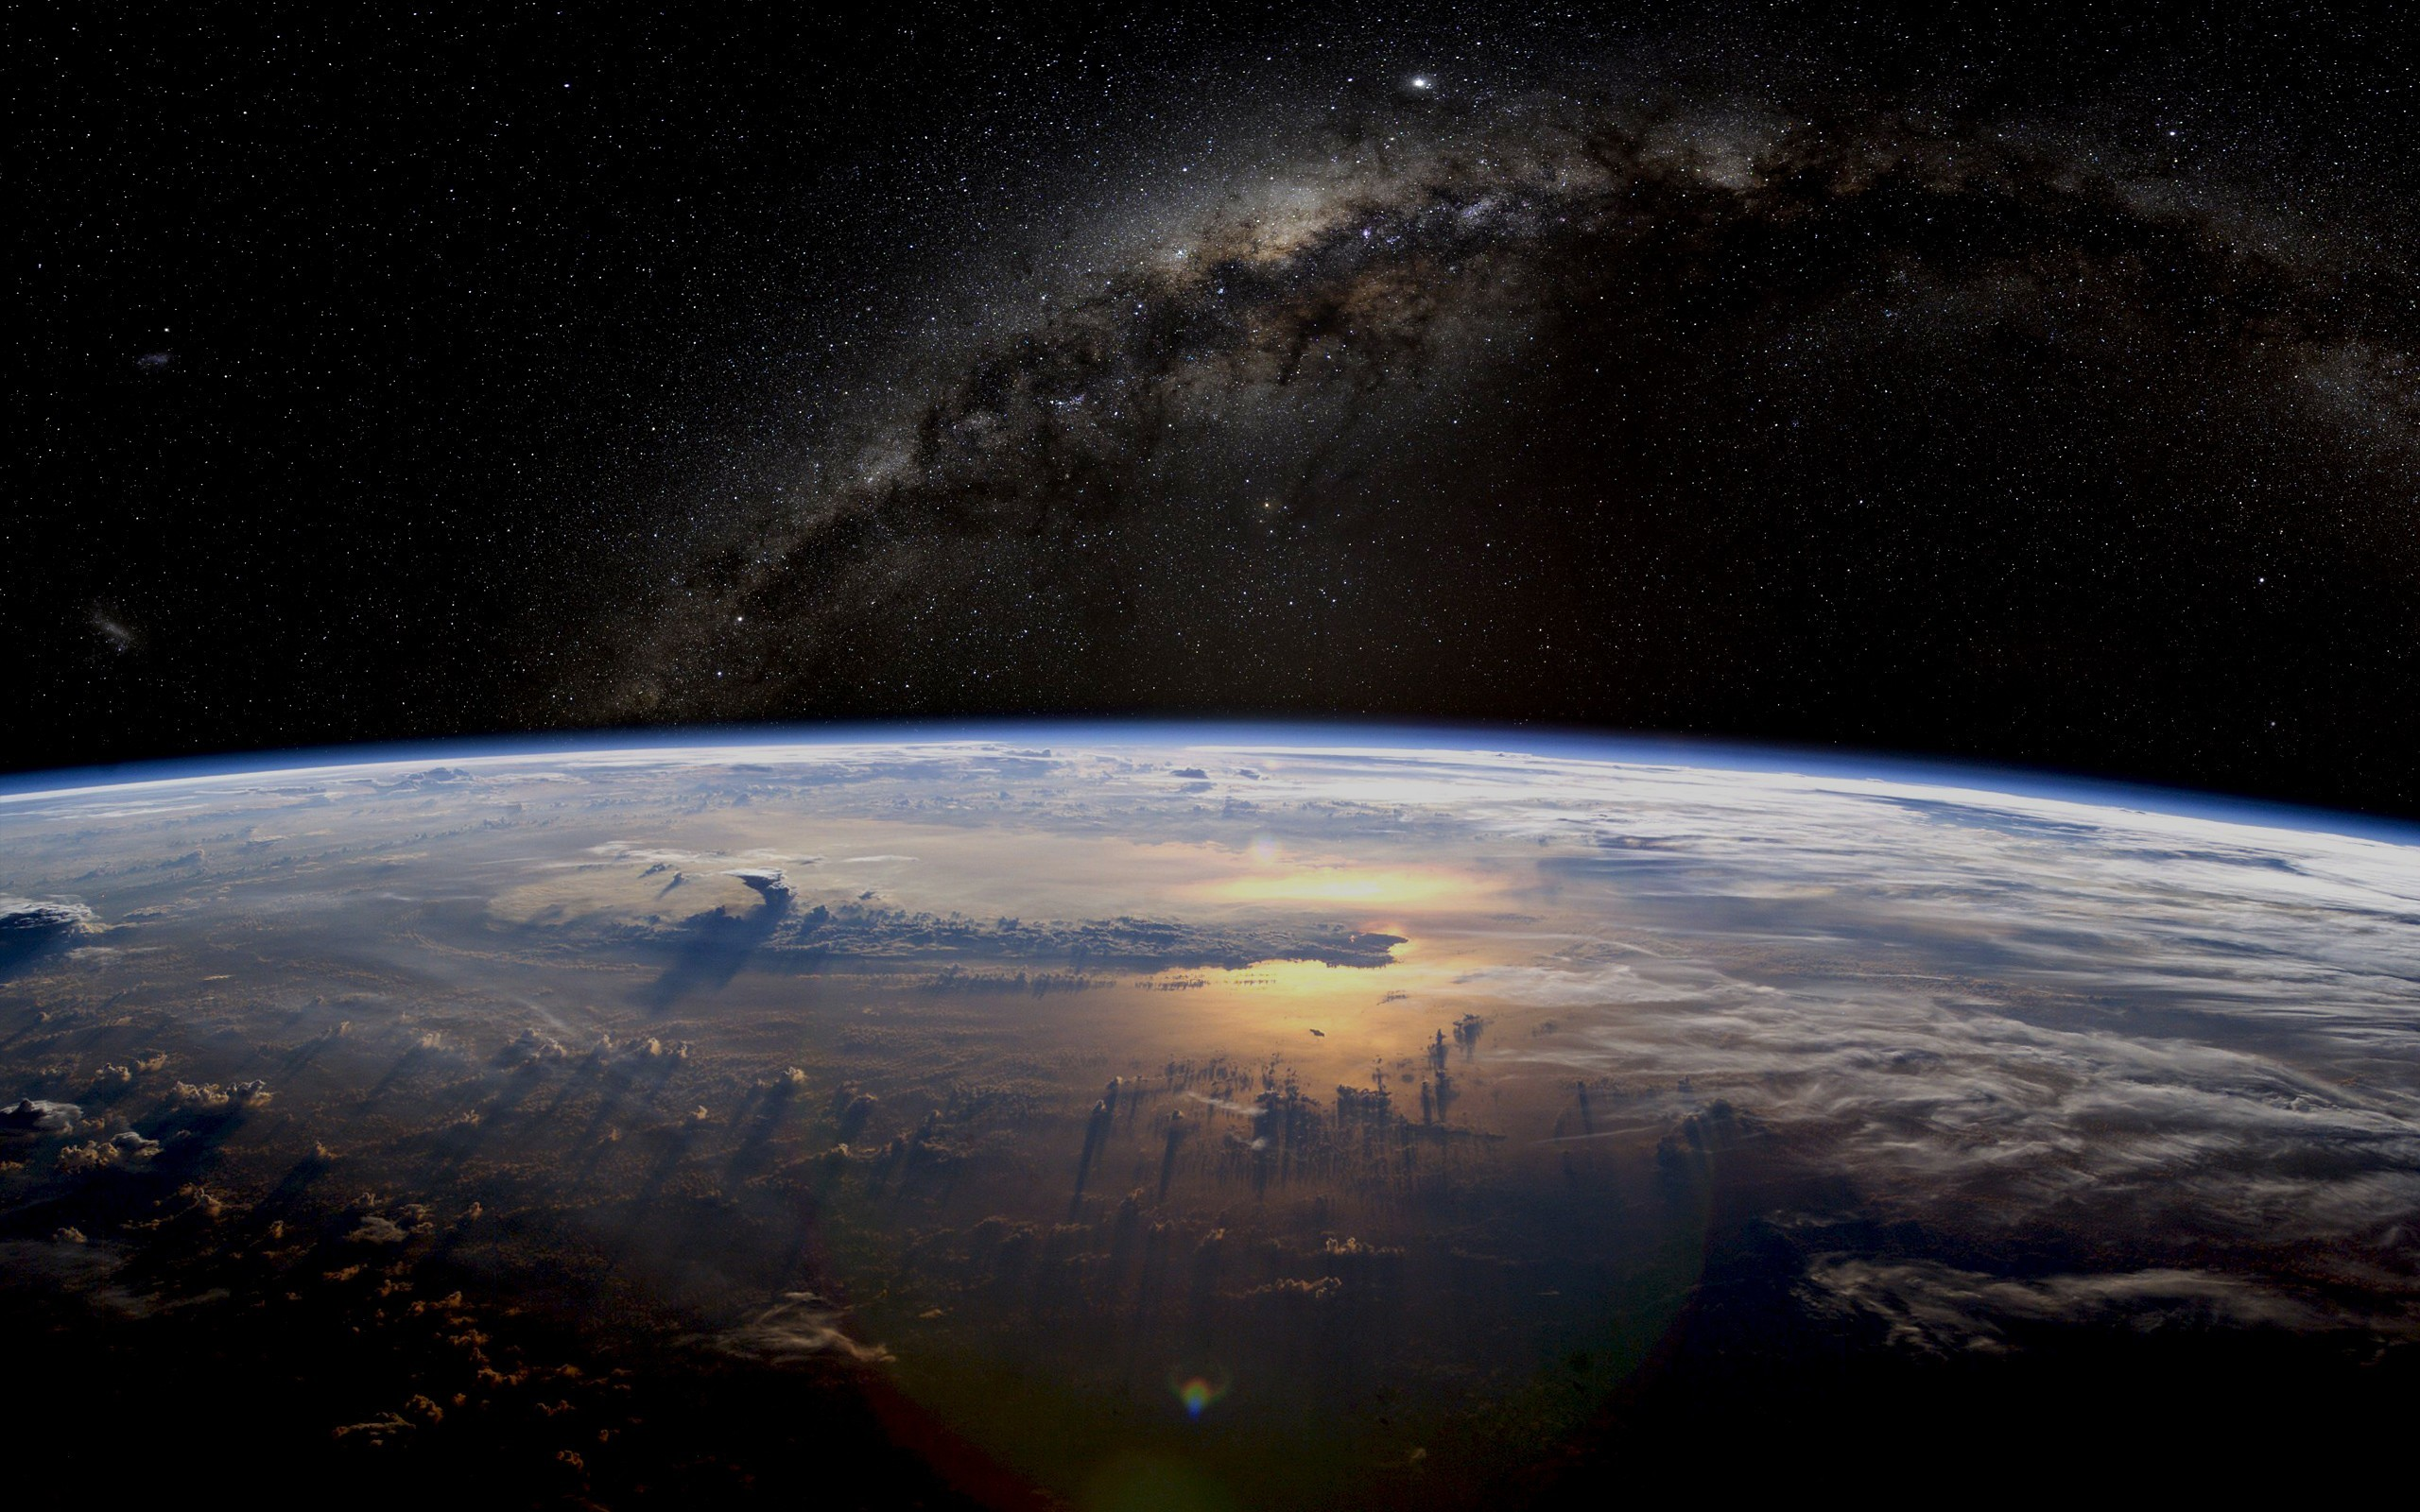 Earth From Space Hd wallpaper. 2560×1600